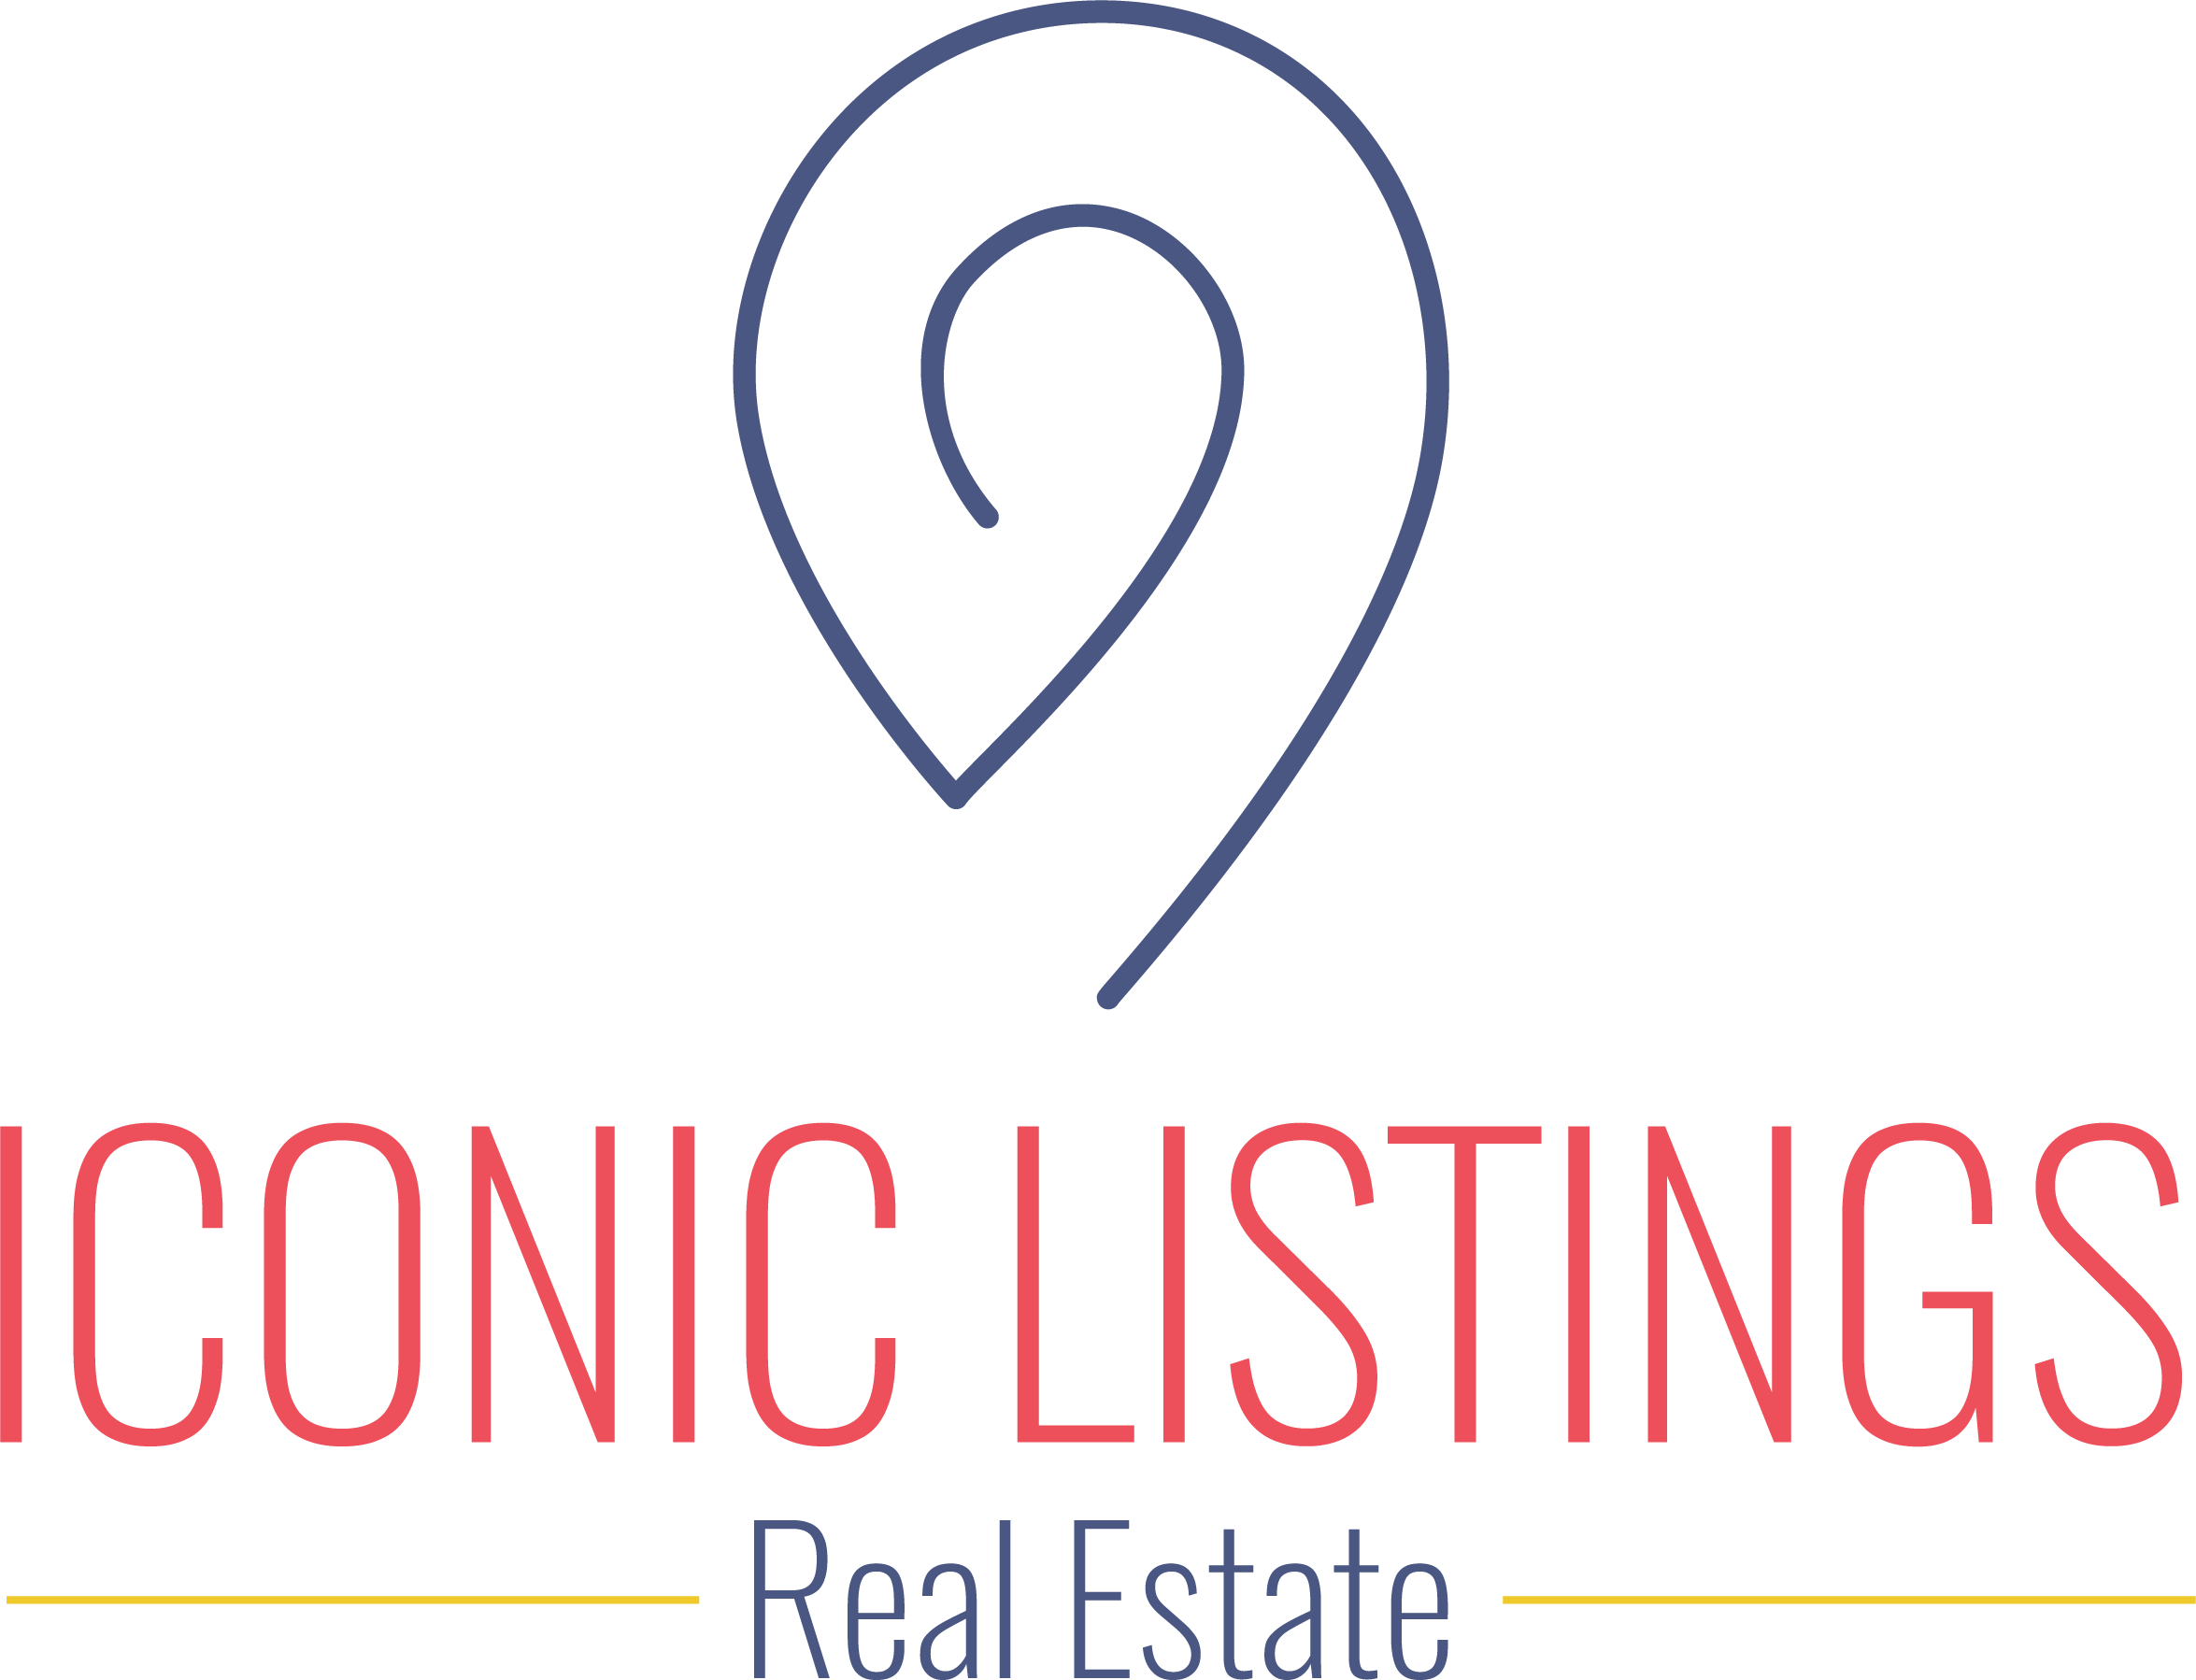 Iconic Listings